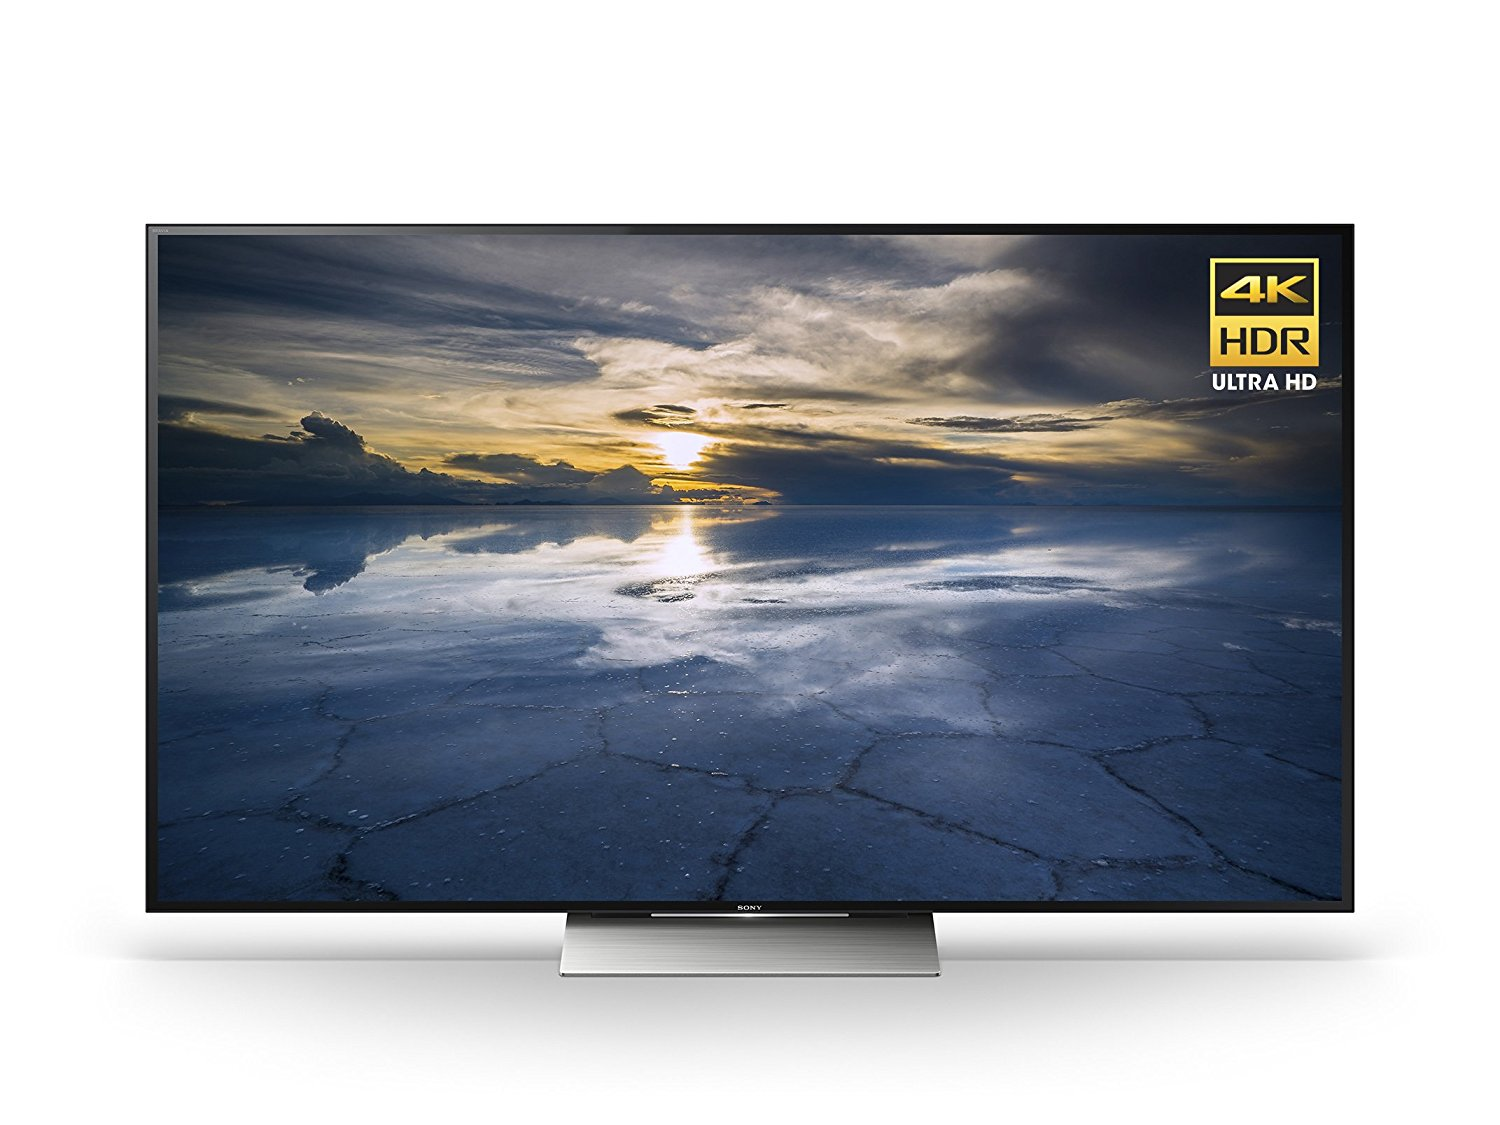 [This is a great choice](https://www.amazon.com/dp/B01A5LUBJS?tag=toolstoysdeals-20) if you're looking for a smaller 55-inch TV and greater value than the LG OLED TVs below.